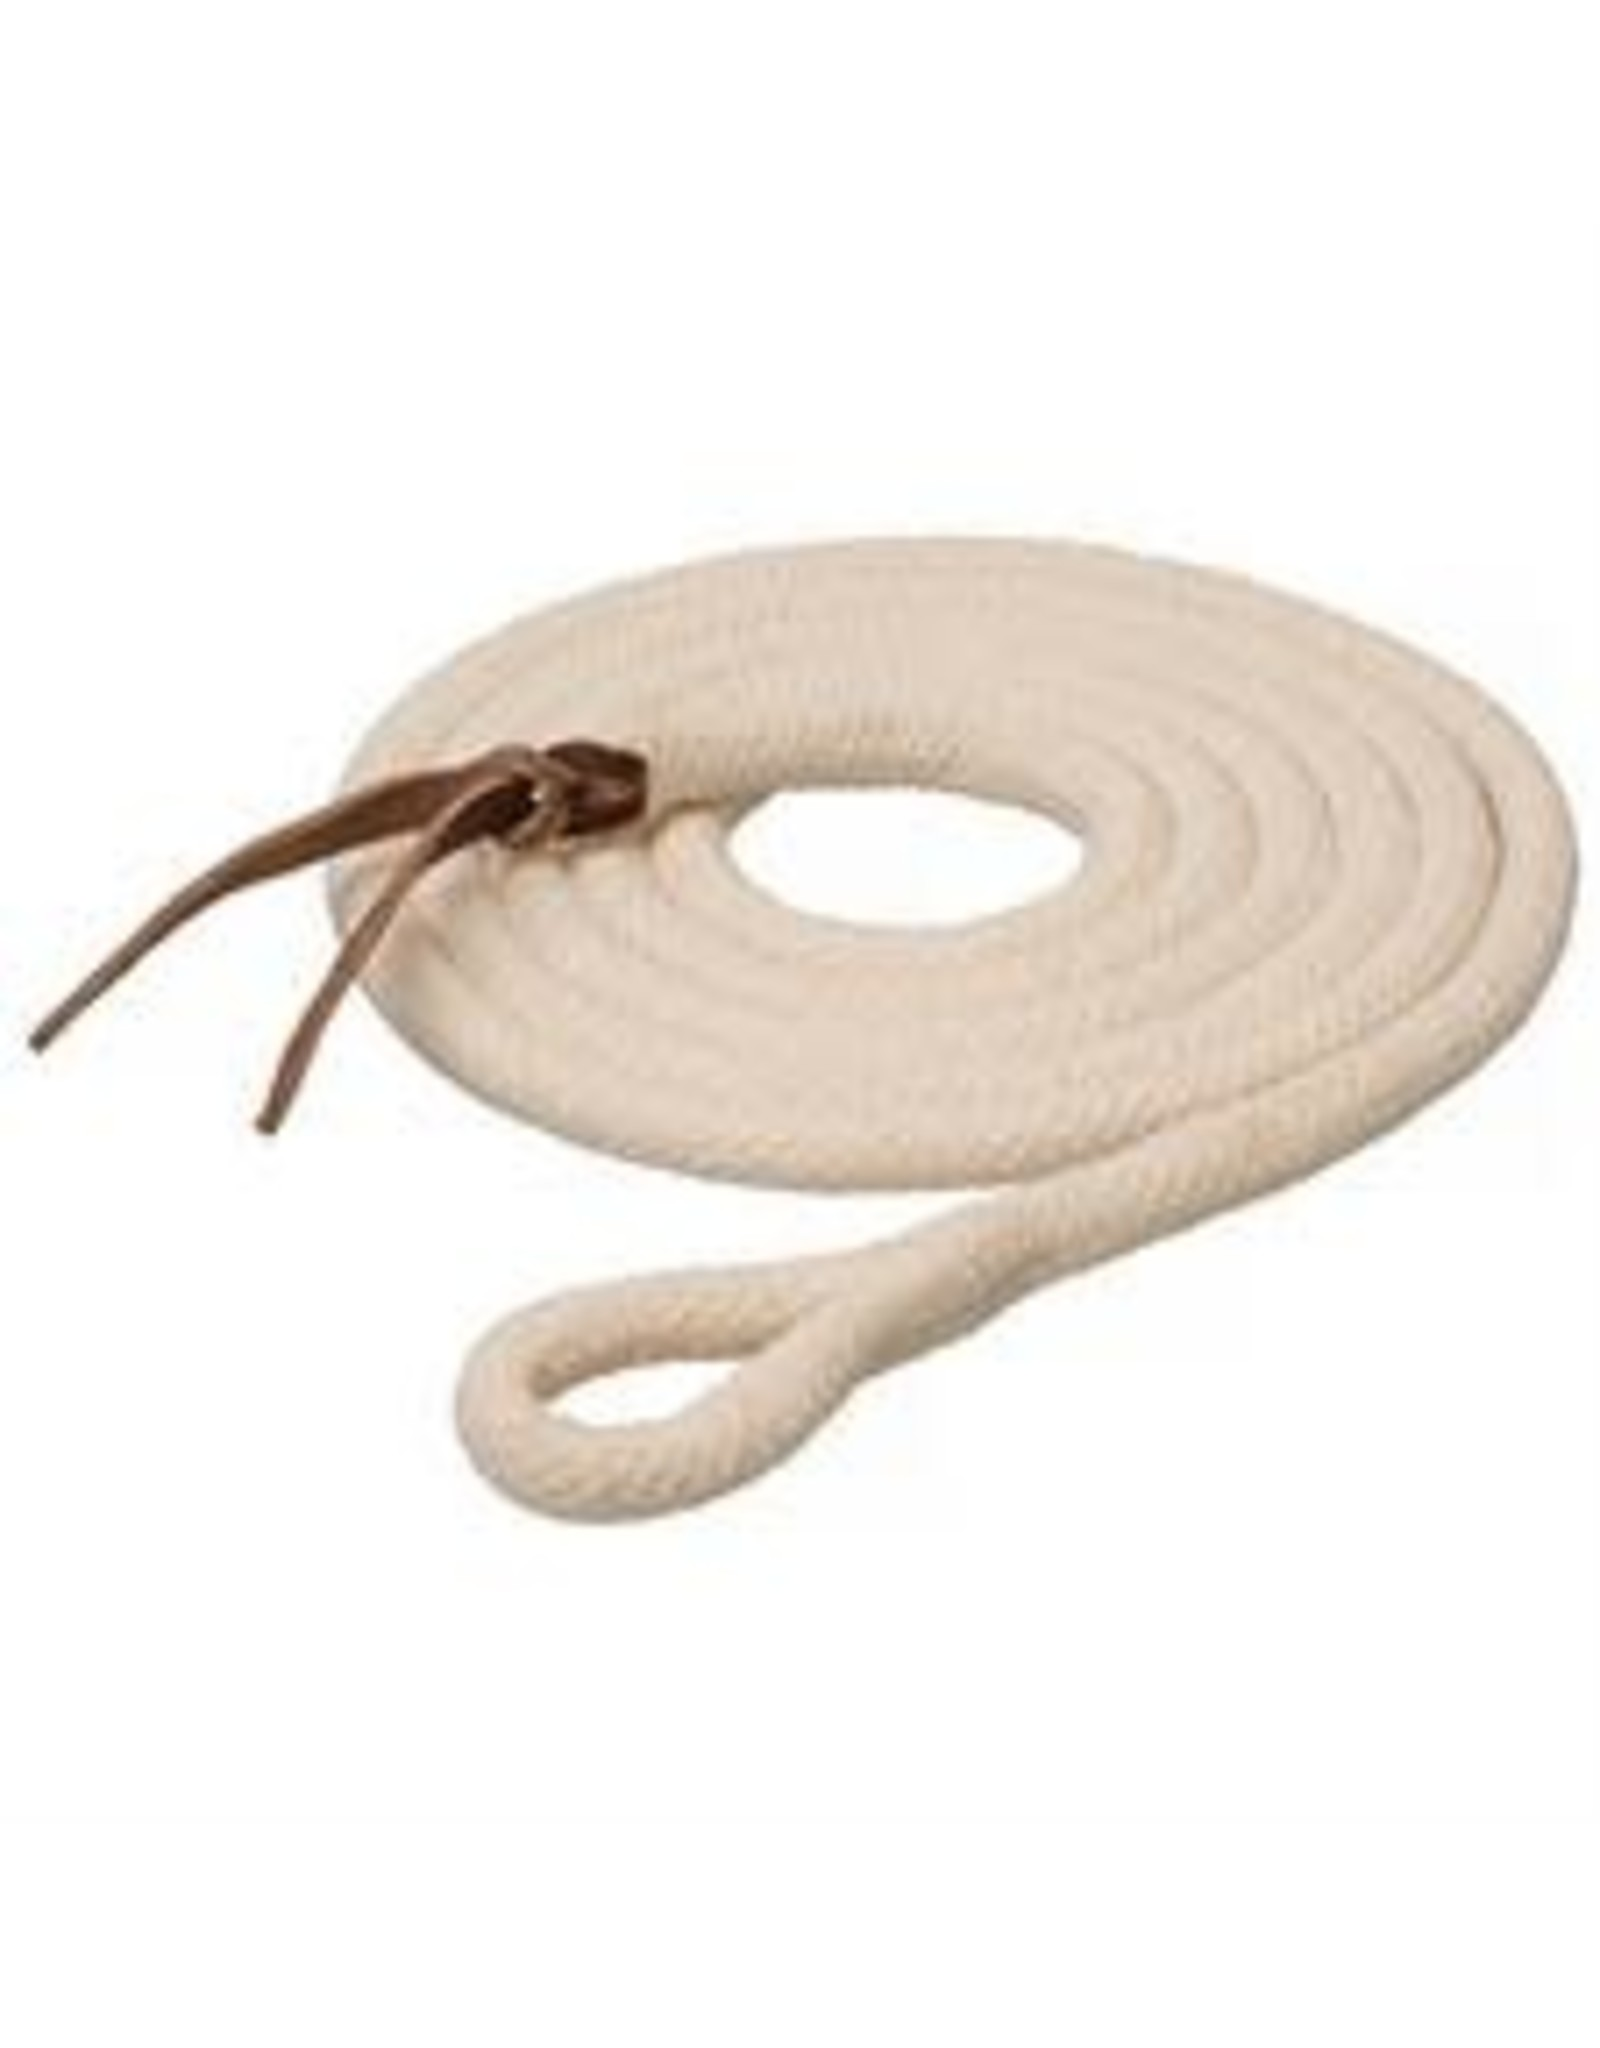 "Pima Cotton Lead 5/8""x 10'"